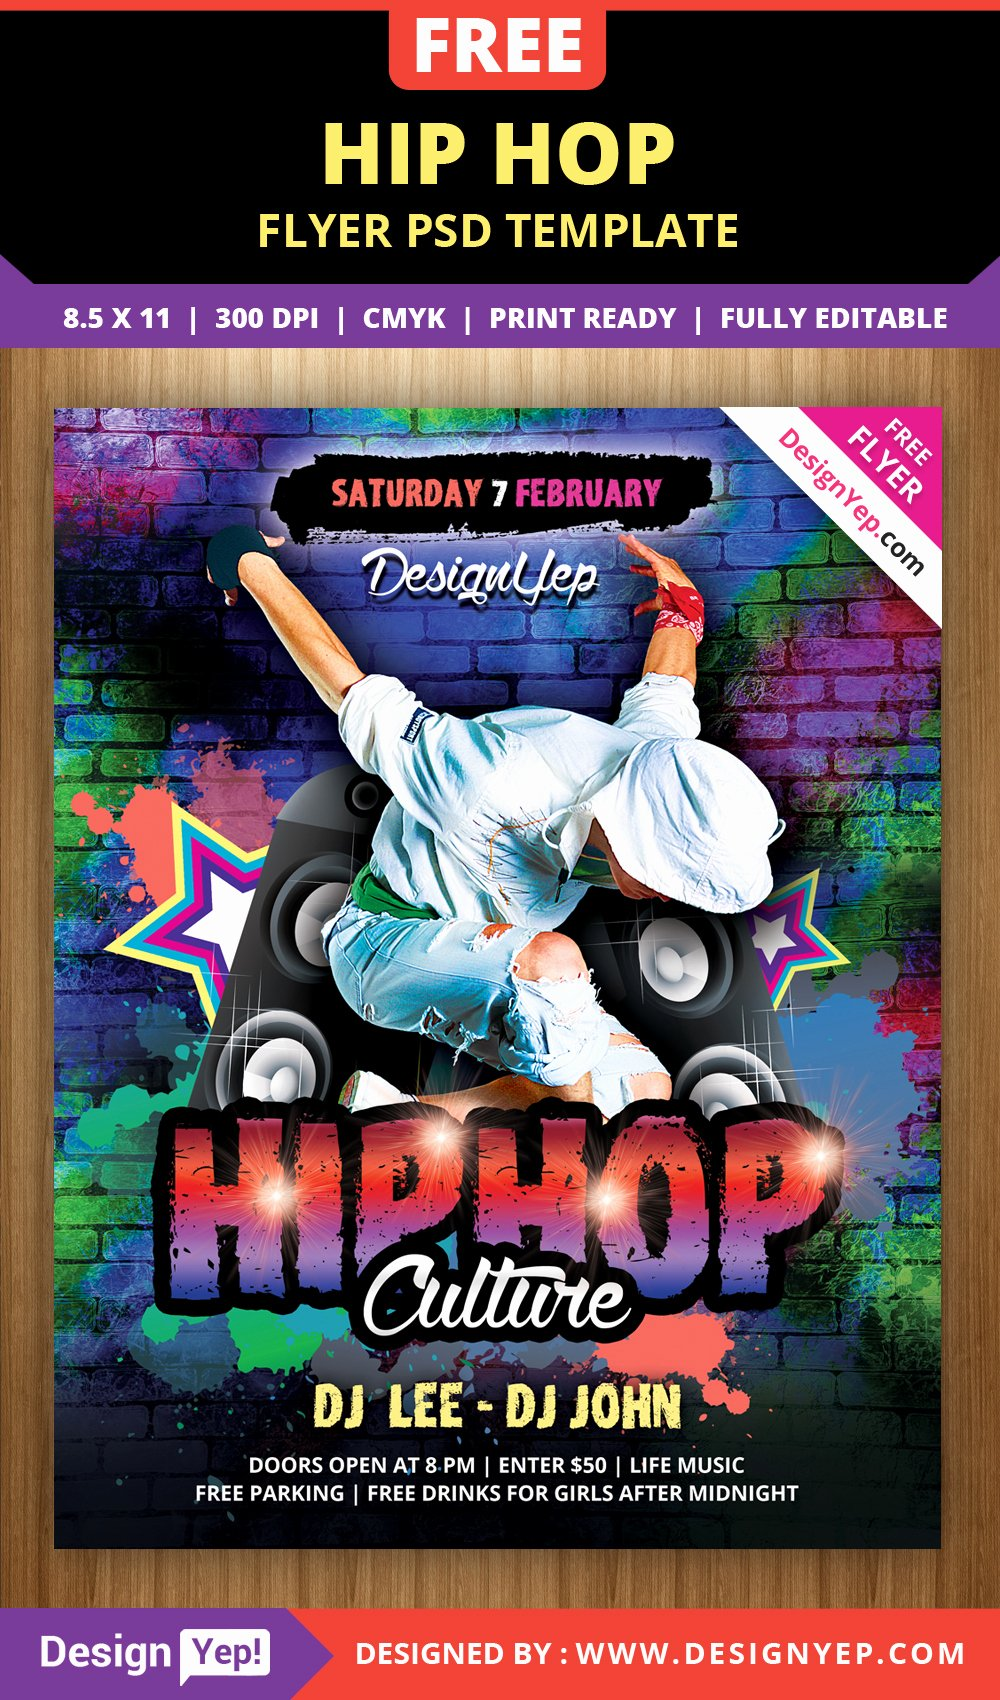 Hip Hop Flyer Template Inspirational Free Hip Hop Flyer Psd Template Designyep